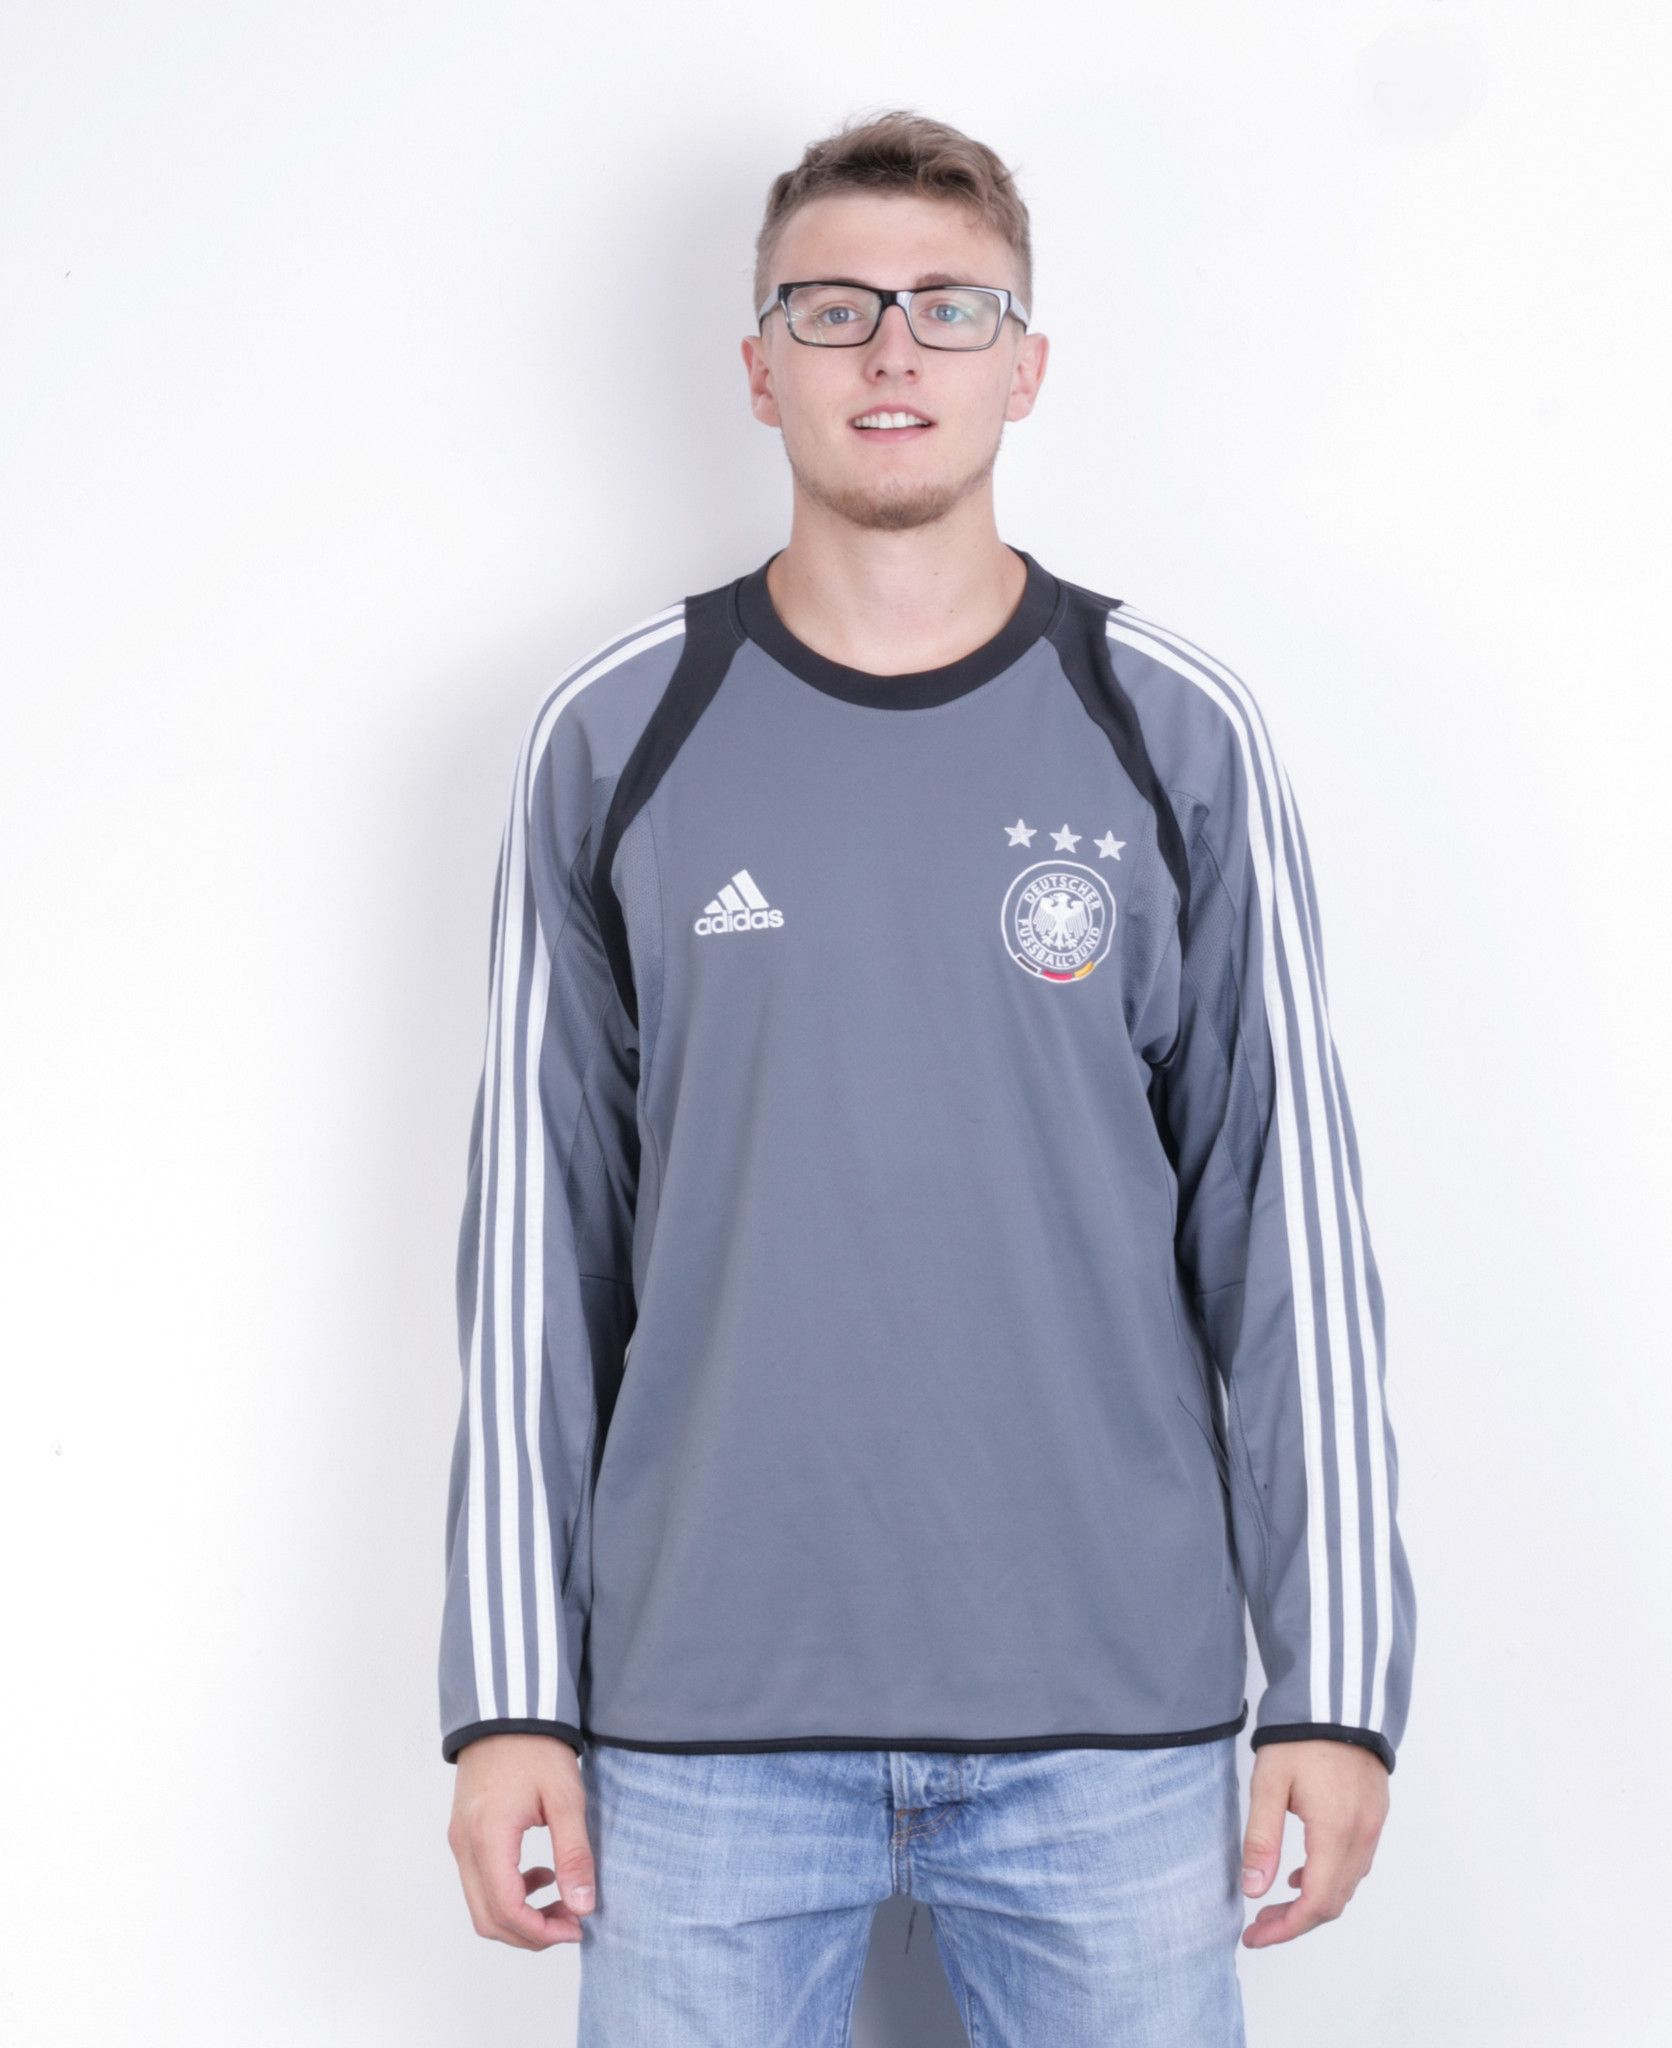 Adidas Deutscher Fussball-Bund Mens 46/48 2XL Shirt Long Sleeve Grey Football Club Germany